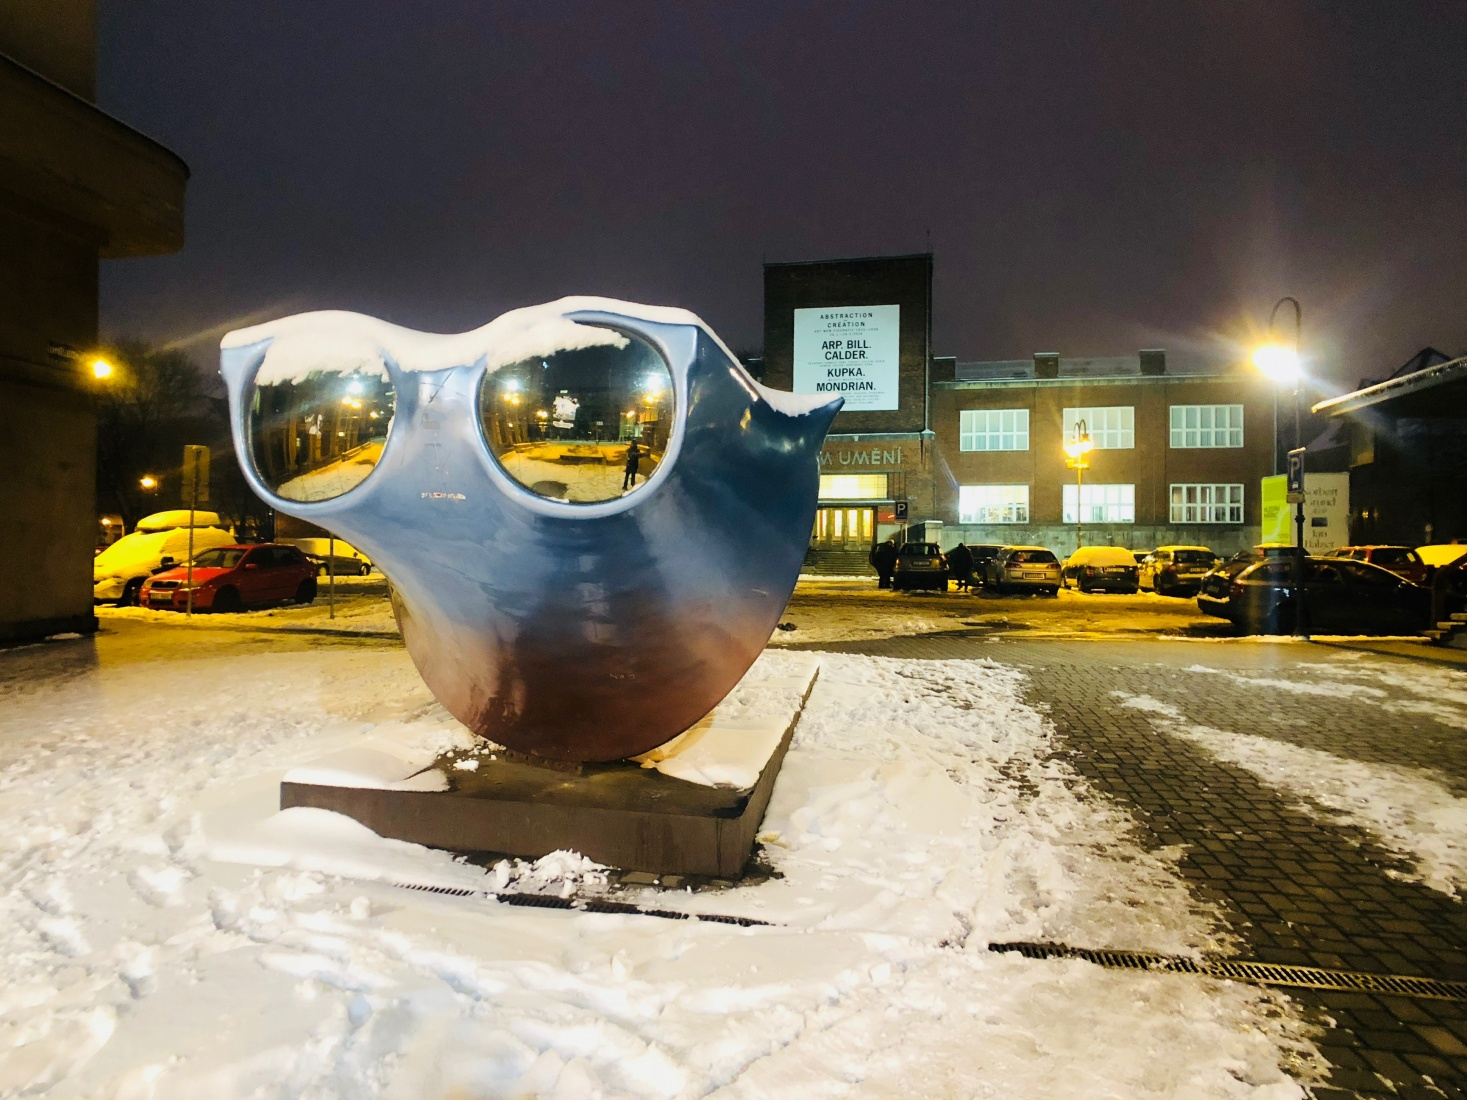 An artsy square with a large sculpture resembling Ray Ban sunglasses outside the House of Art and next to the former Cafe Elektra, now J&T Banka Café, in Ostrava, Czech Republic.